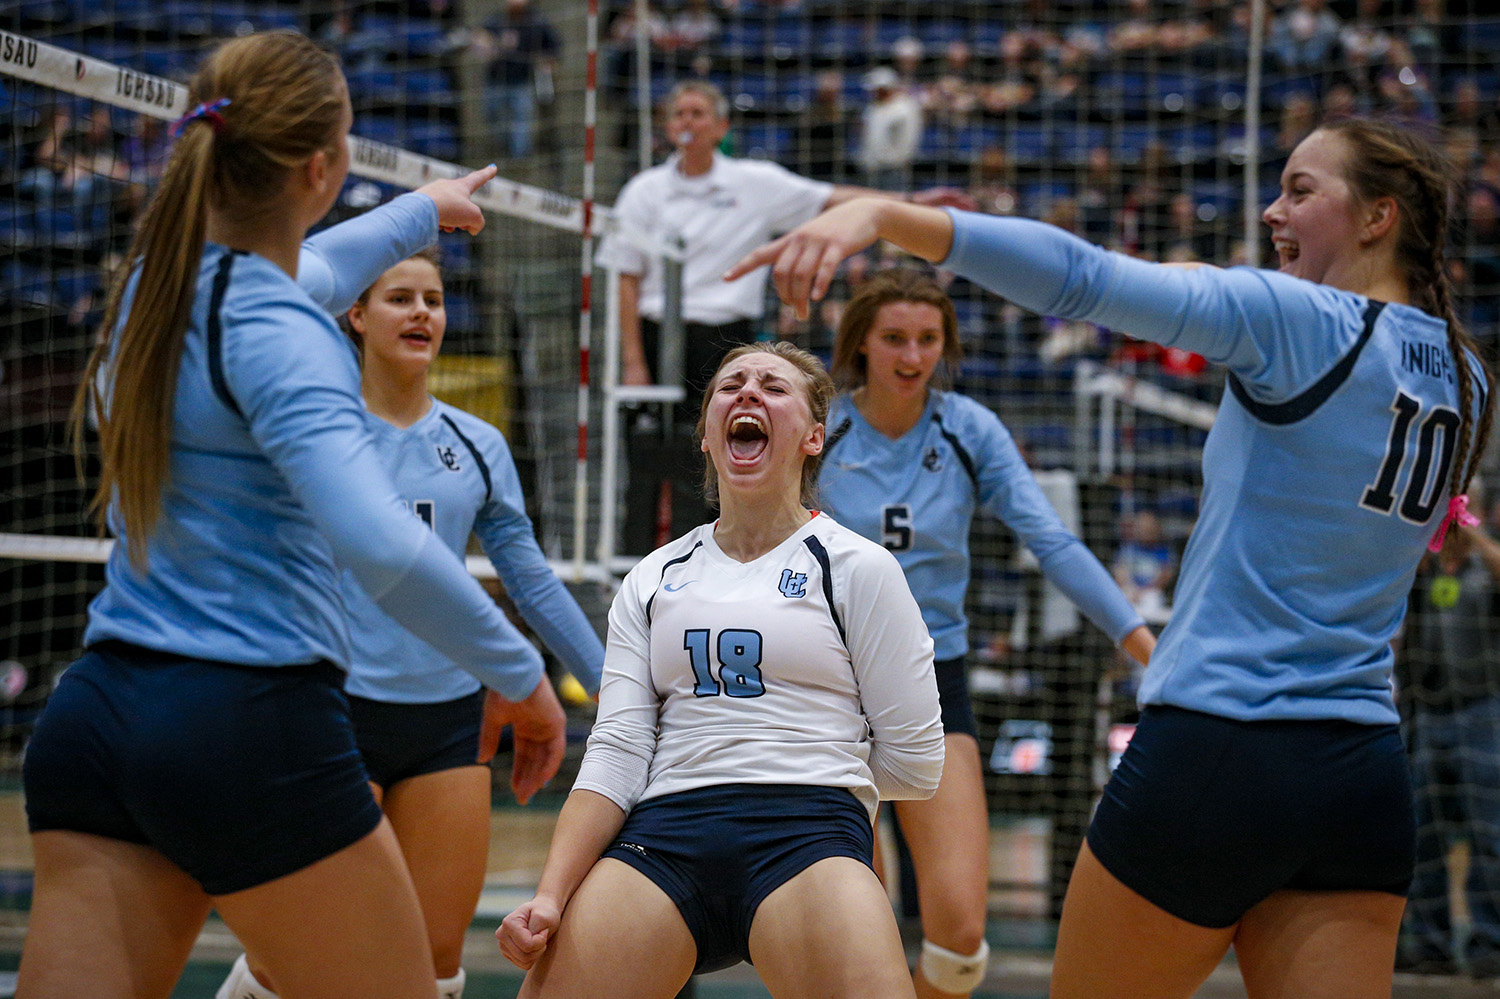 Unity Christian's Anna De Haan (18) celebrates a point with her teammates during Unity Christian vs Mediapolis Class 2A quarterfinal-round state volleyball action played Wednesday, Nov. 9, 2016, at the US Cellular Center in Cedar Rapids, Iowa.